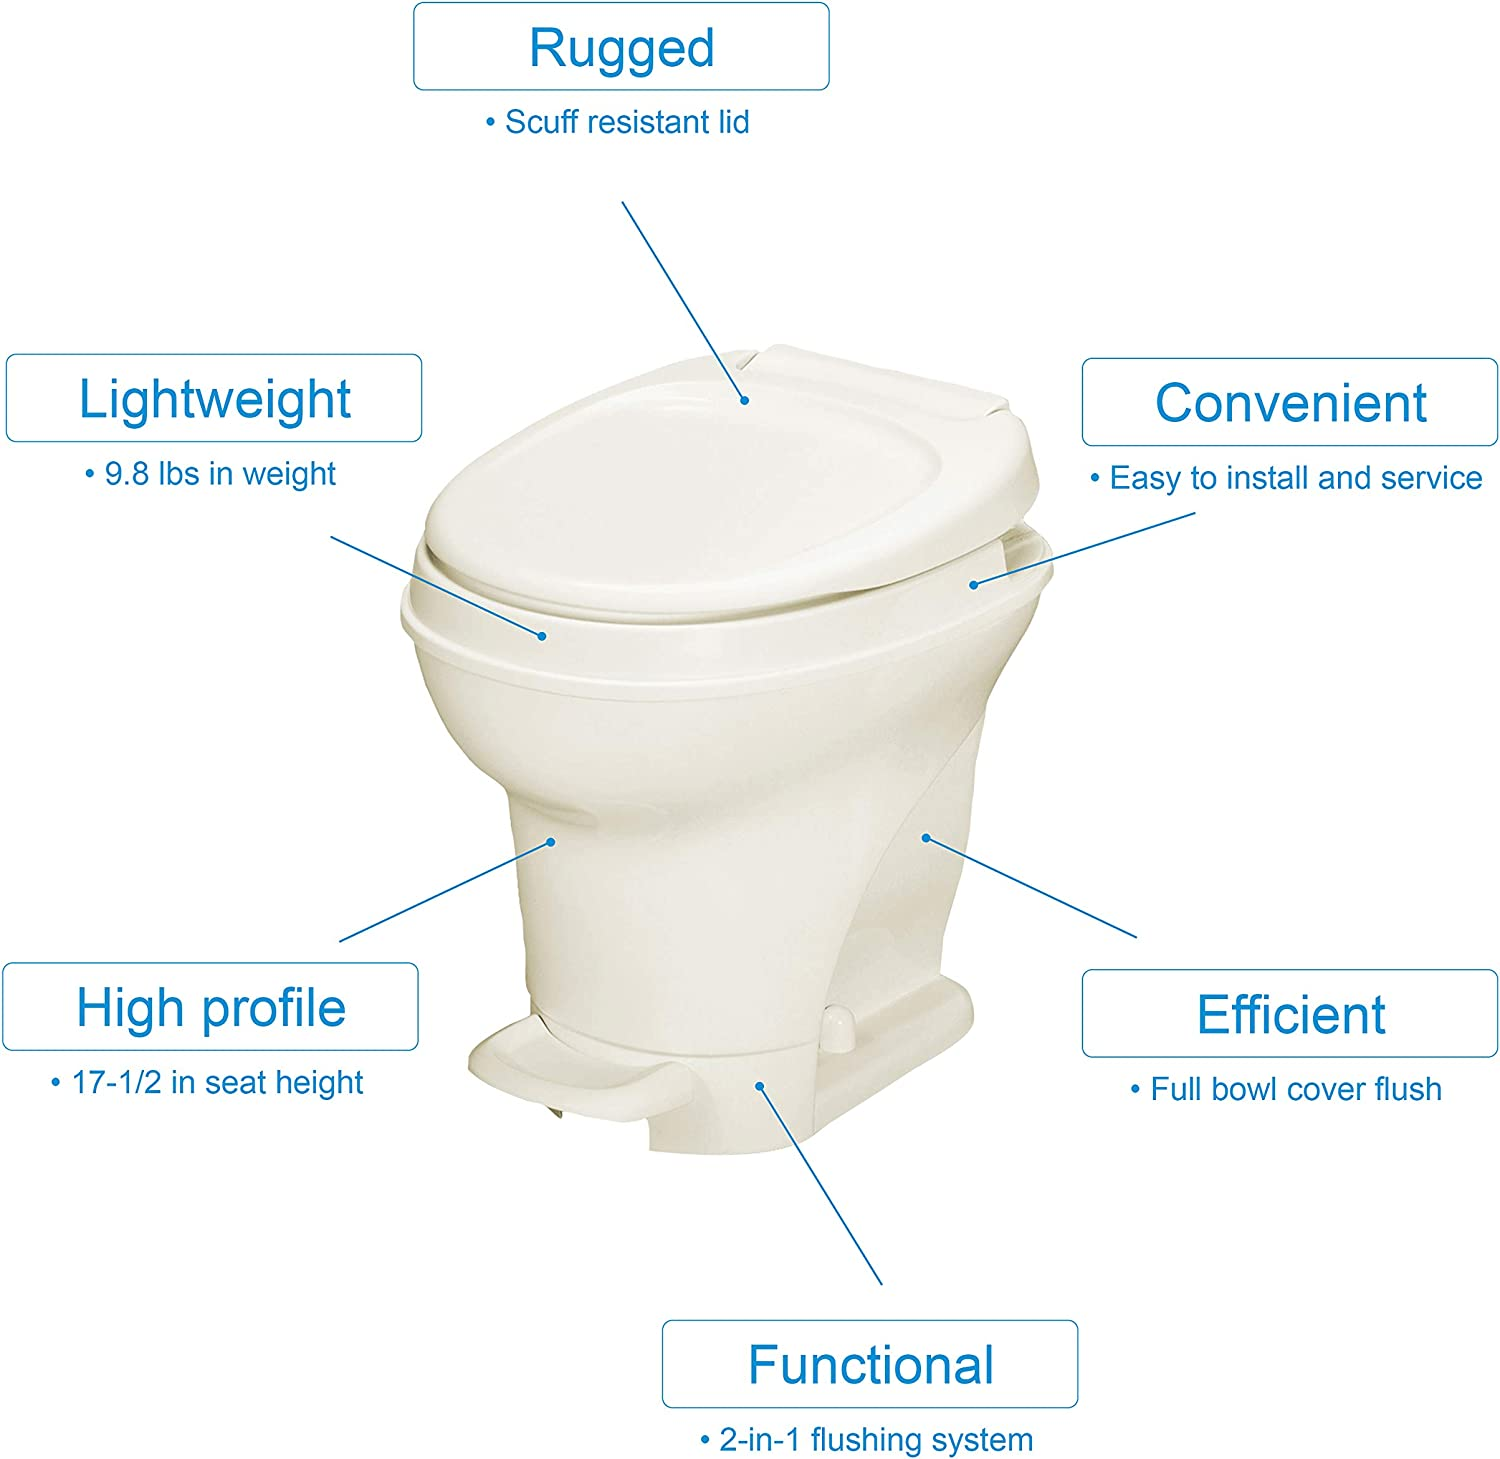 Thetford Aqua-Magic V RV Toilet-High Profile-Parchment Color-Hand Sprayer-Pedal Flush 31680